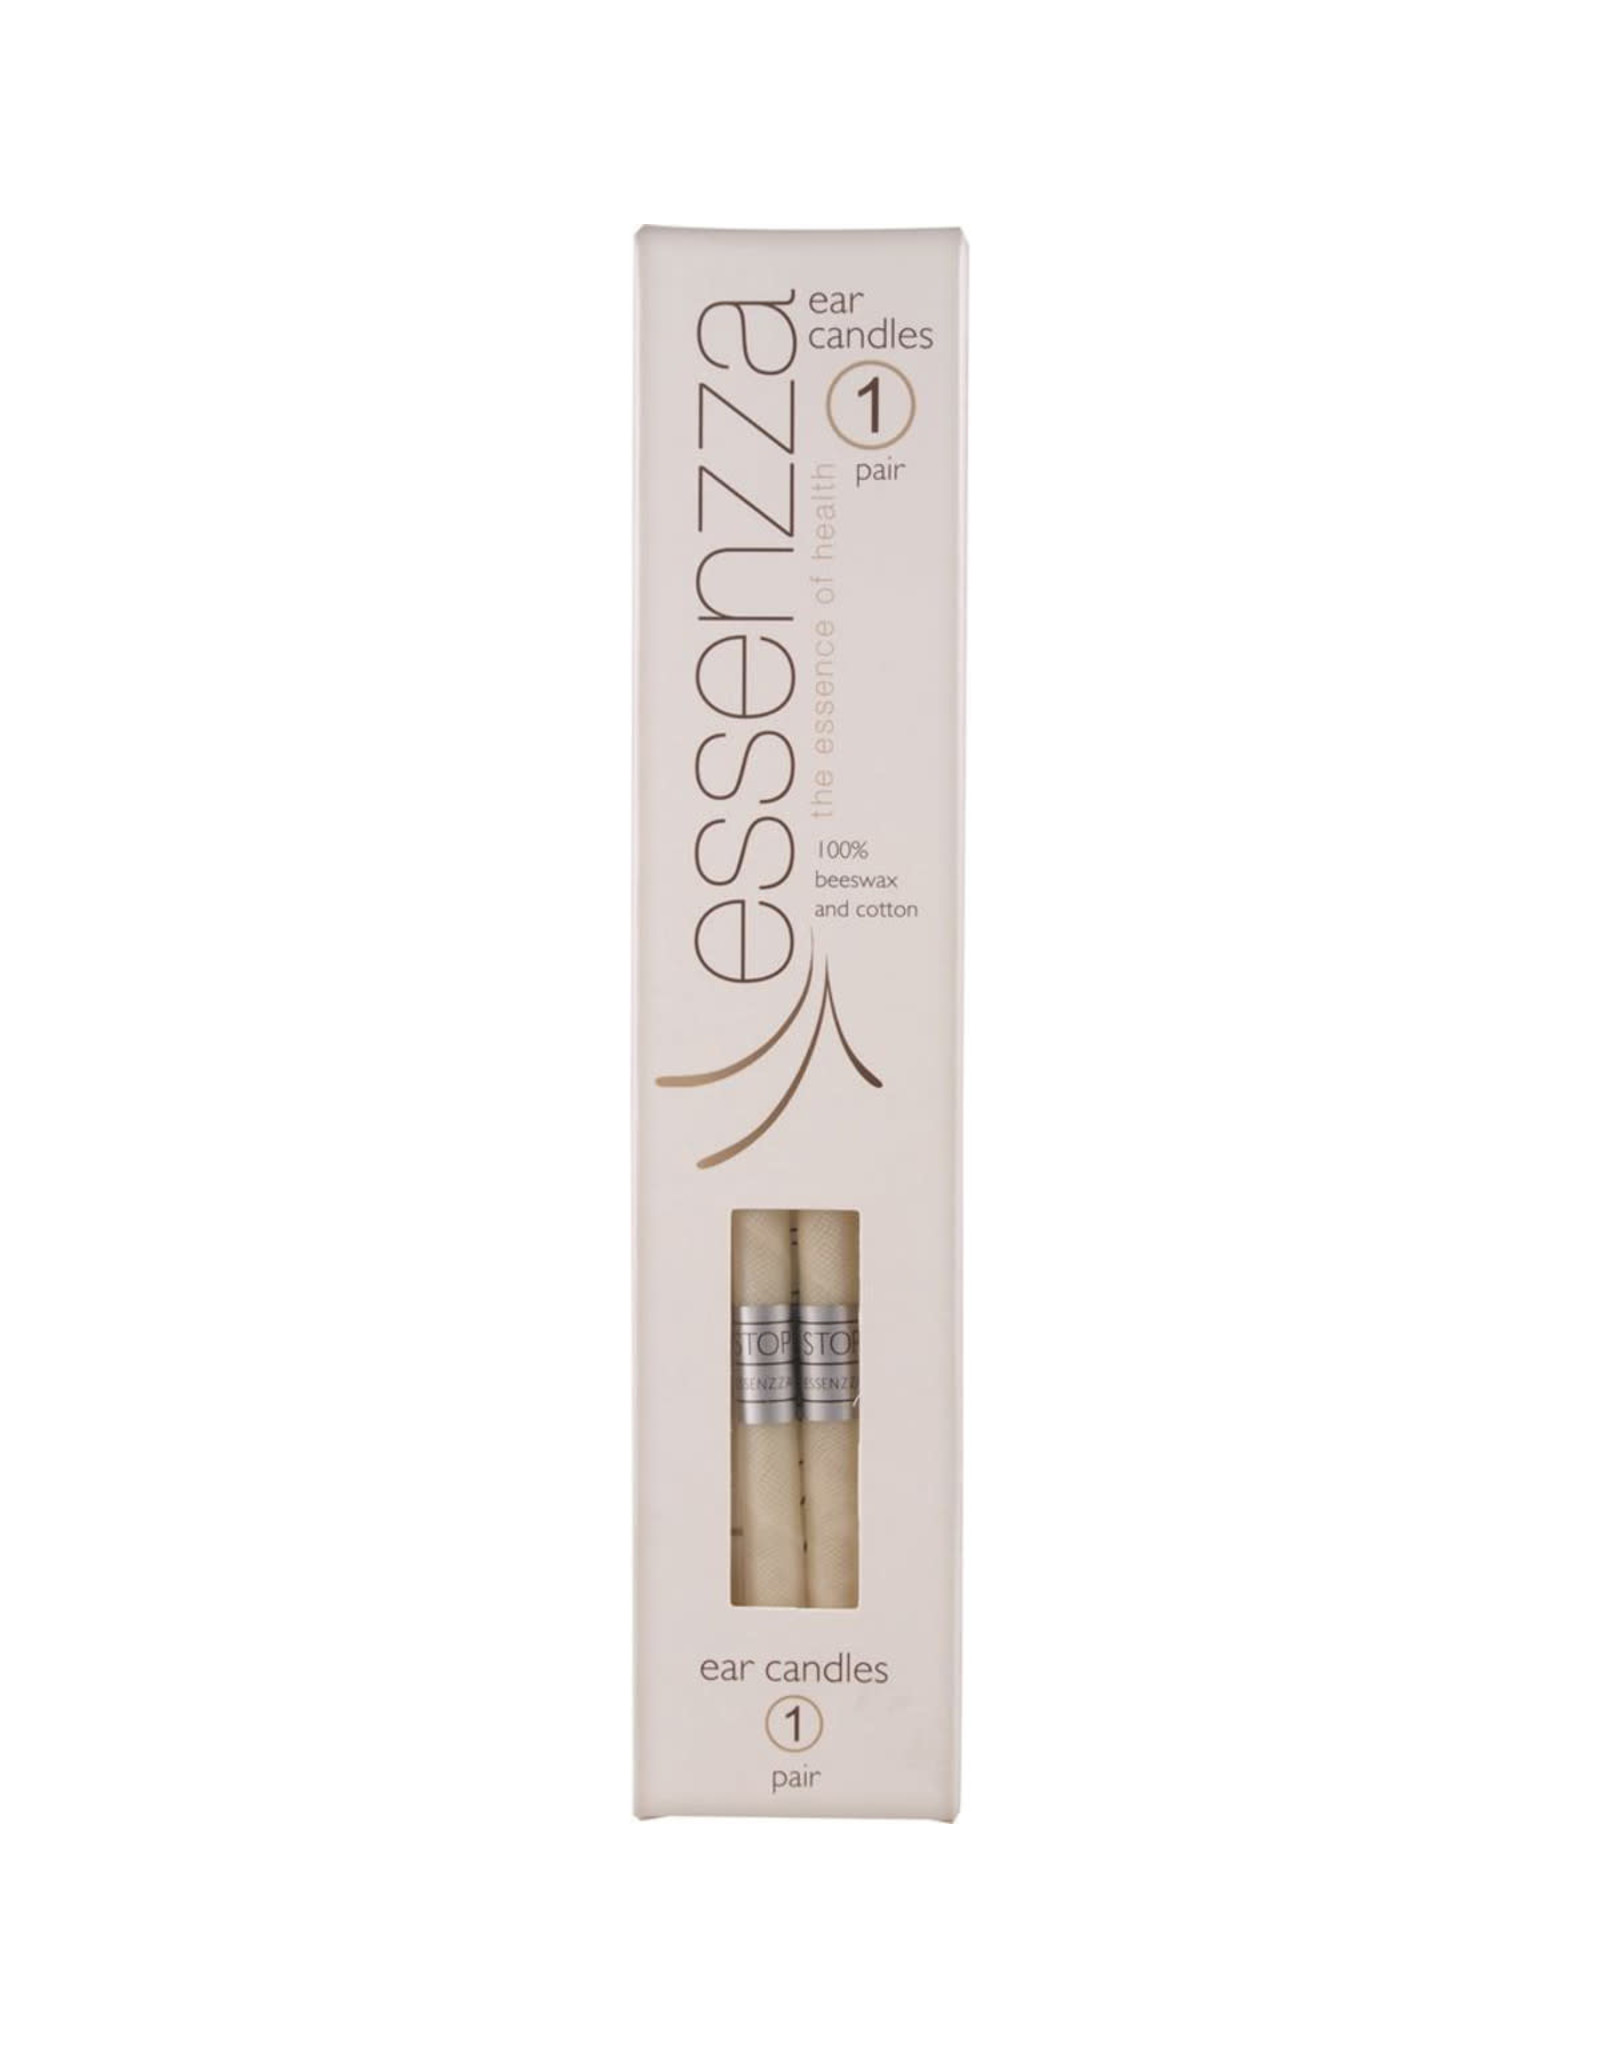 Essenza Ear Candles 1 Pair